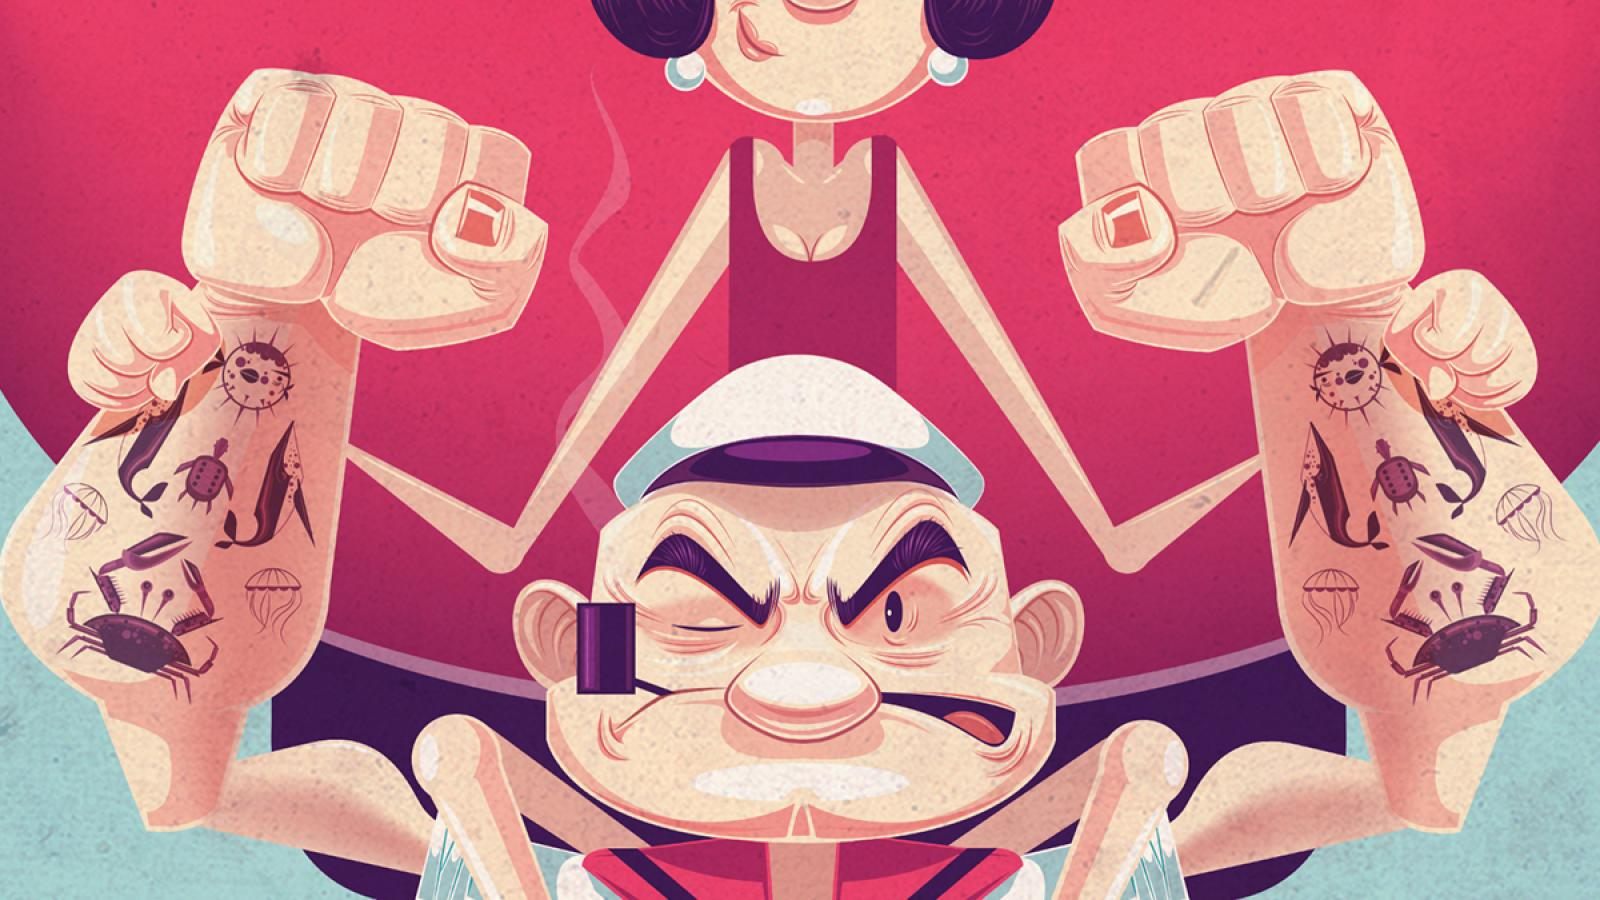 Endearing Illustrations by James Gilleard